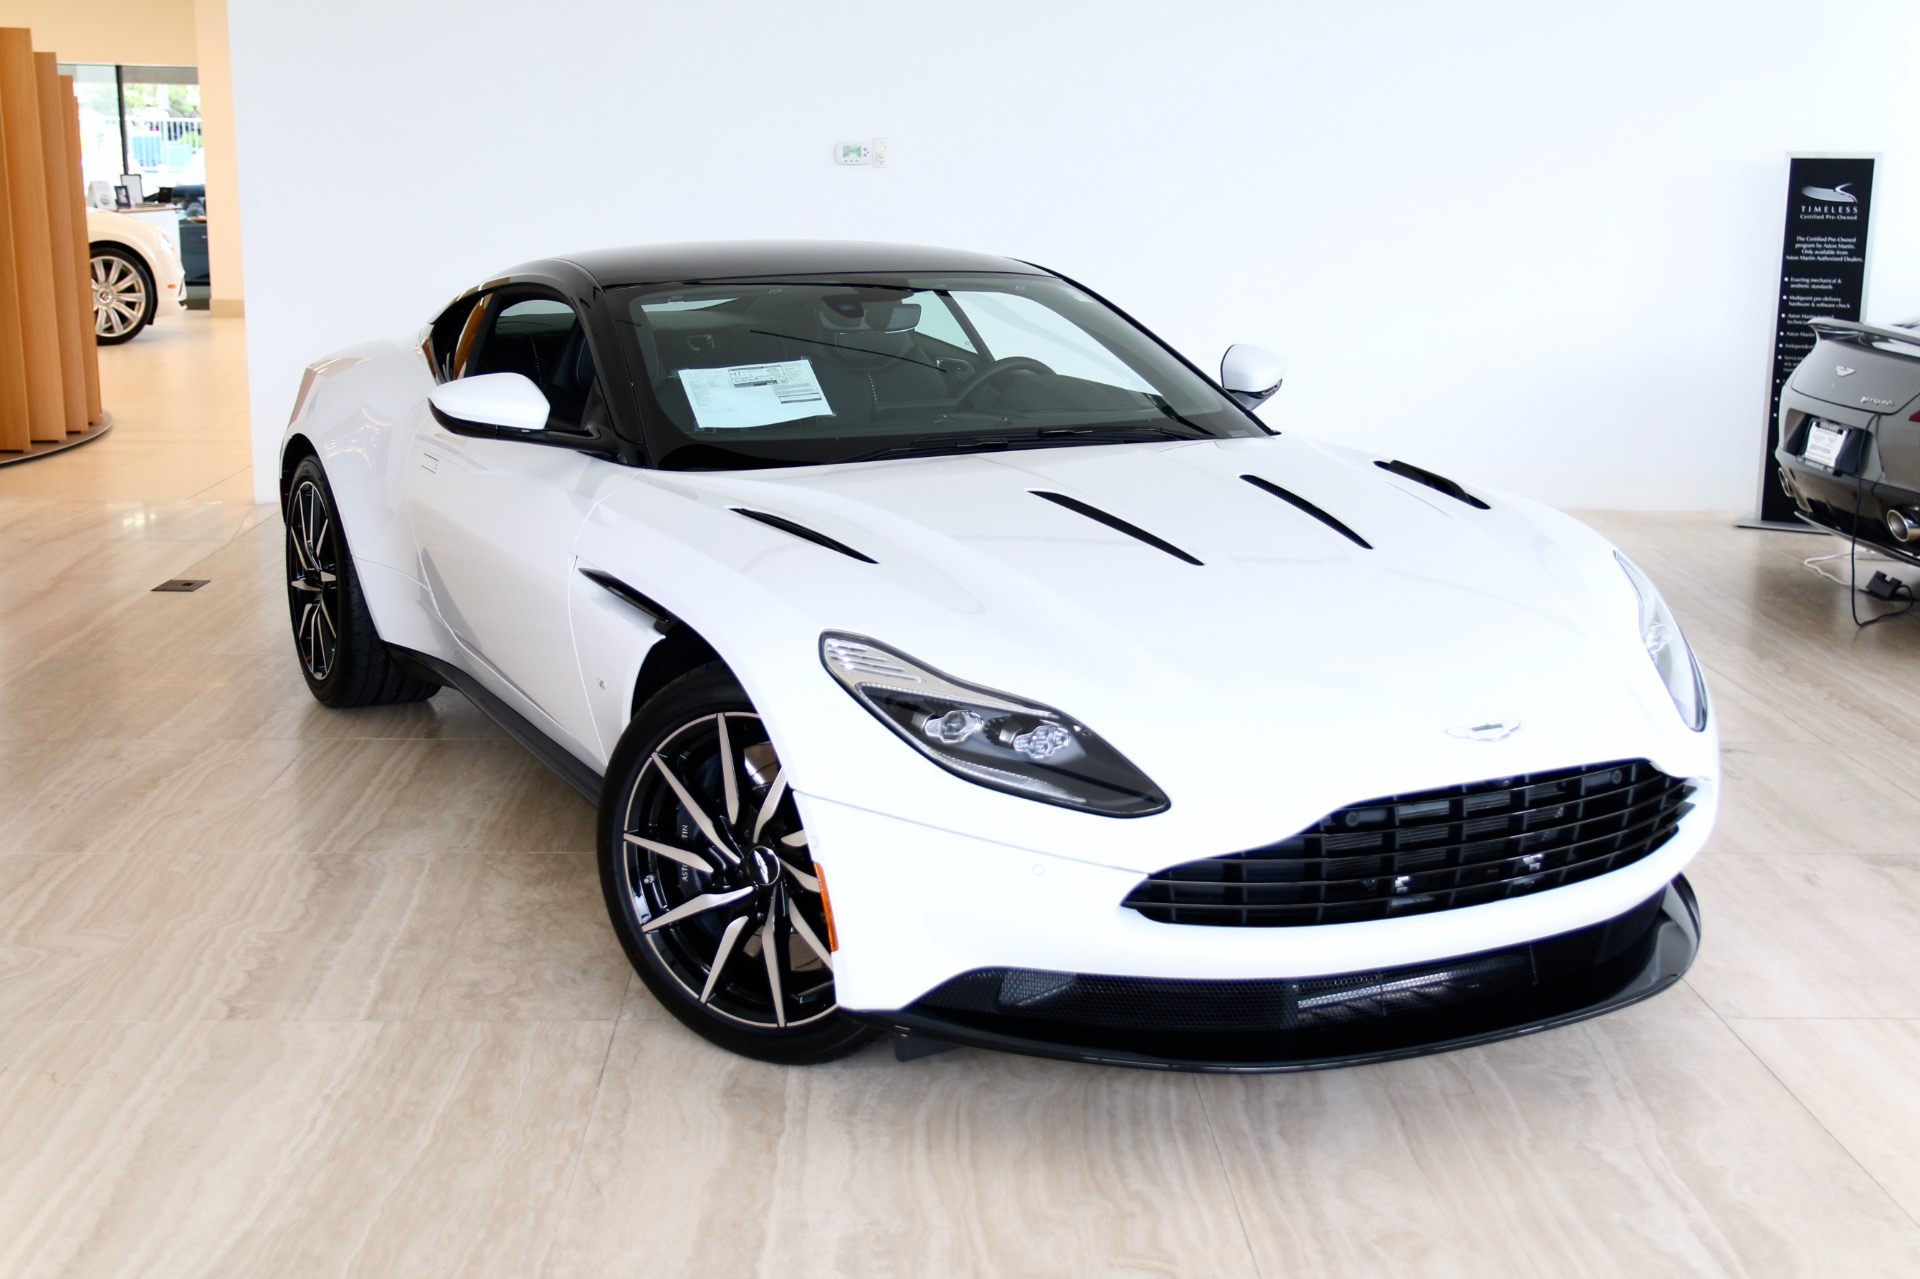 2017 Aston Martin DB11 Stock # 7NL00488 for sale near Vienna, VA ...